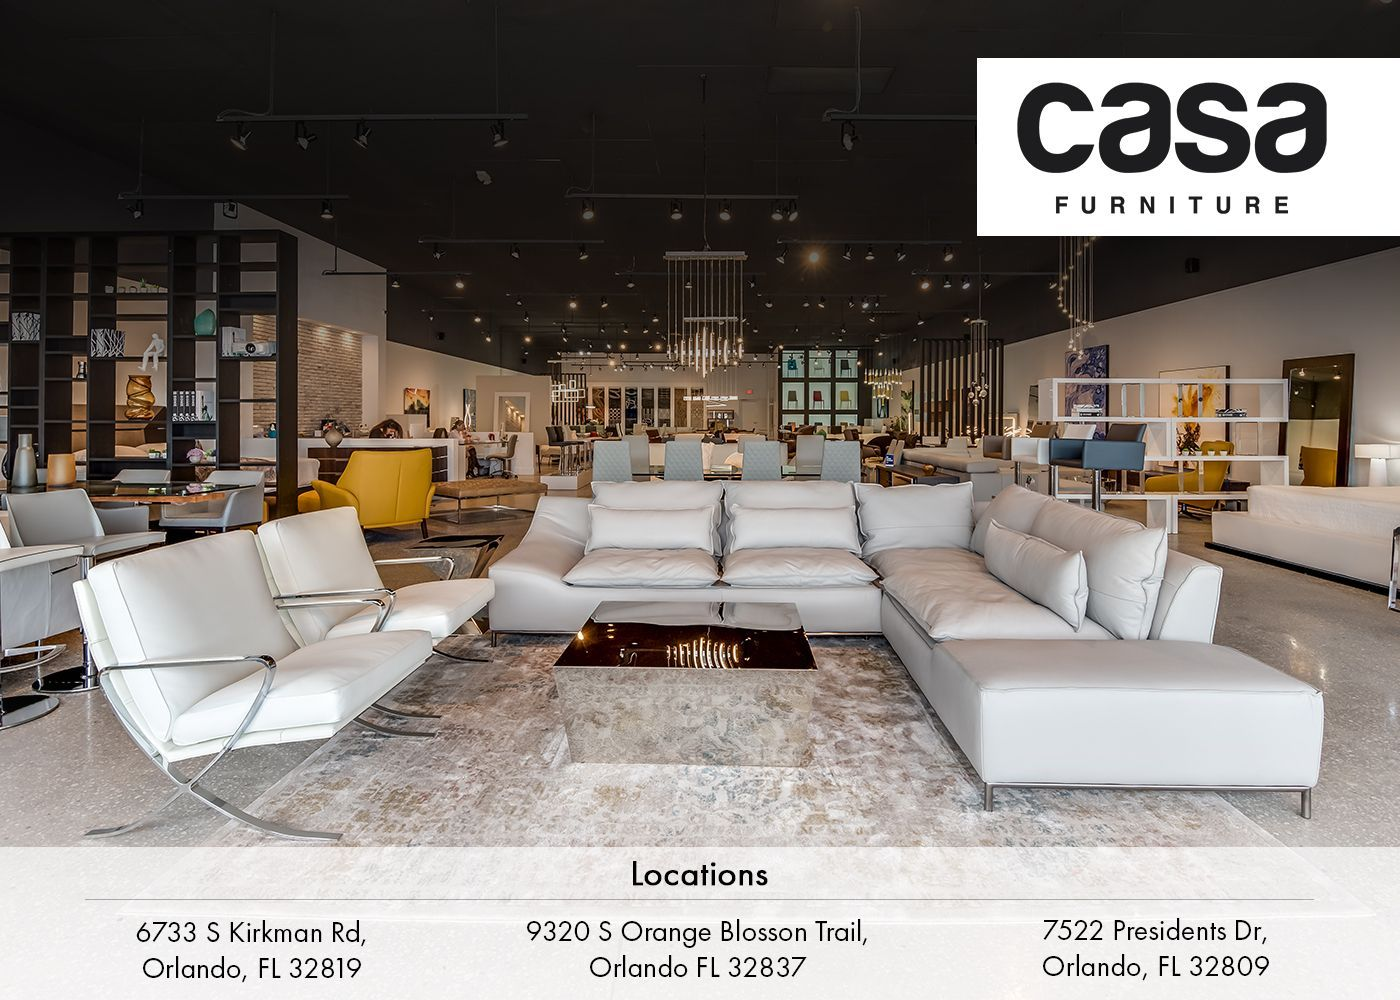 Looking For Modern Furniture Your Home We Deliver To All Central Florida Casafurniture Casamodernfurniture Modernfurniture Orlando